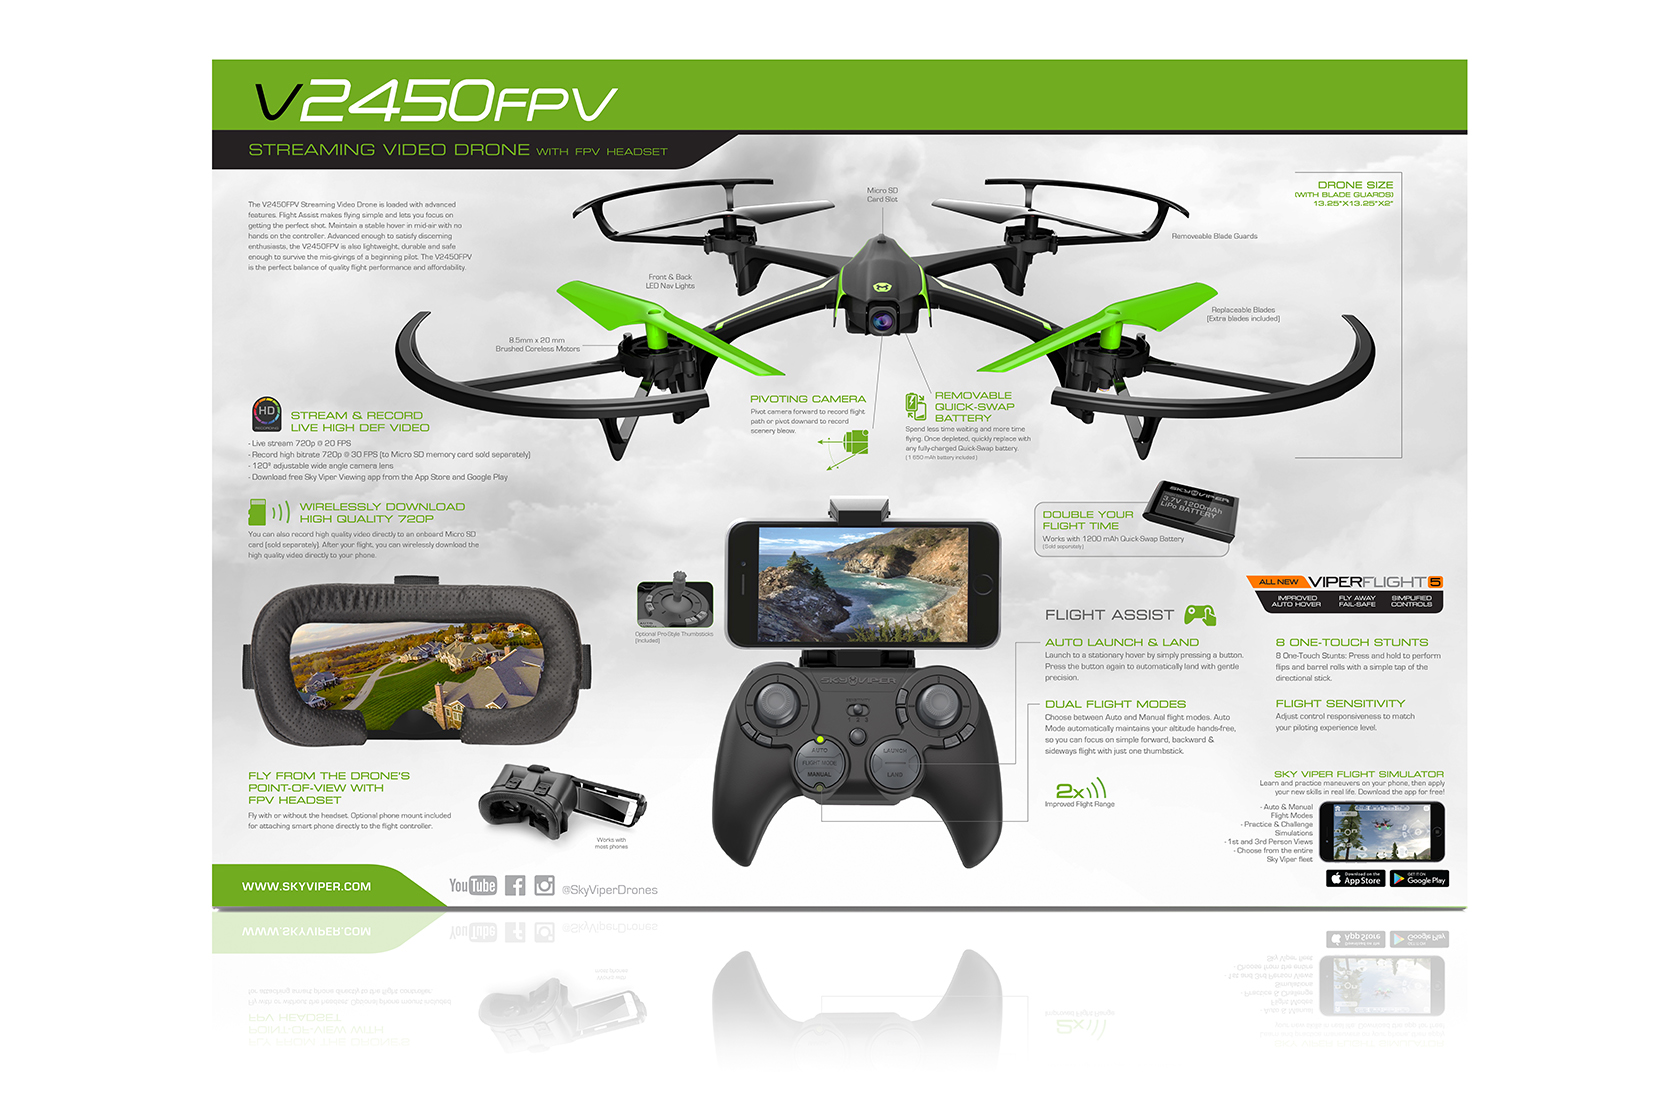 Sky Viper App >> Sky Viper V2450 Hd Video Streaming Drone With Fpv